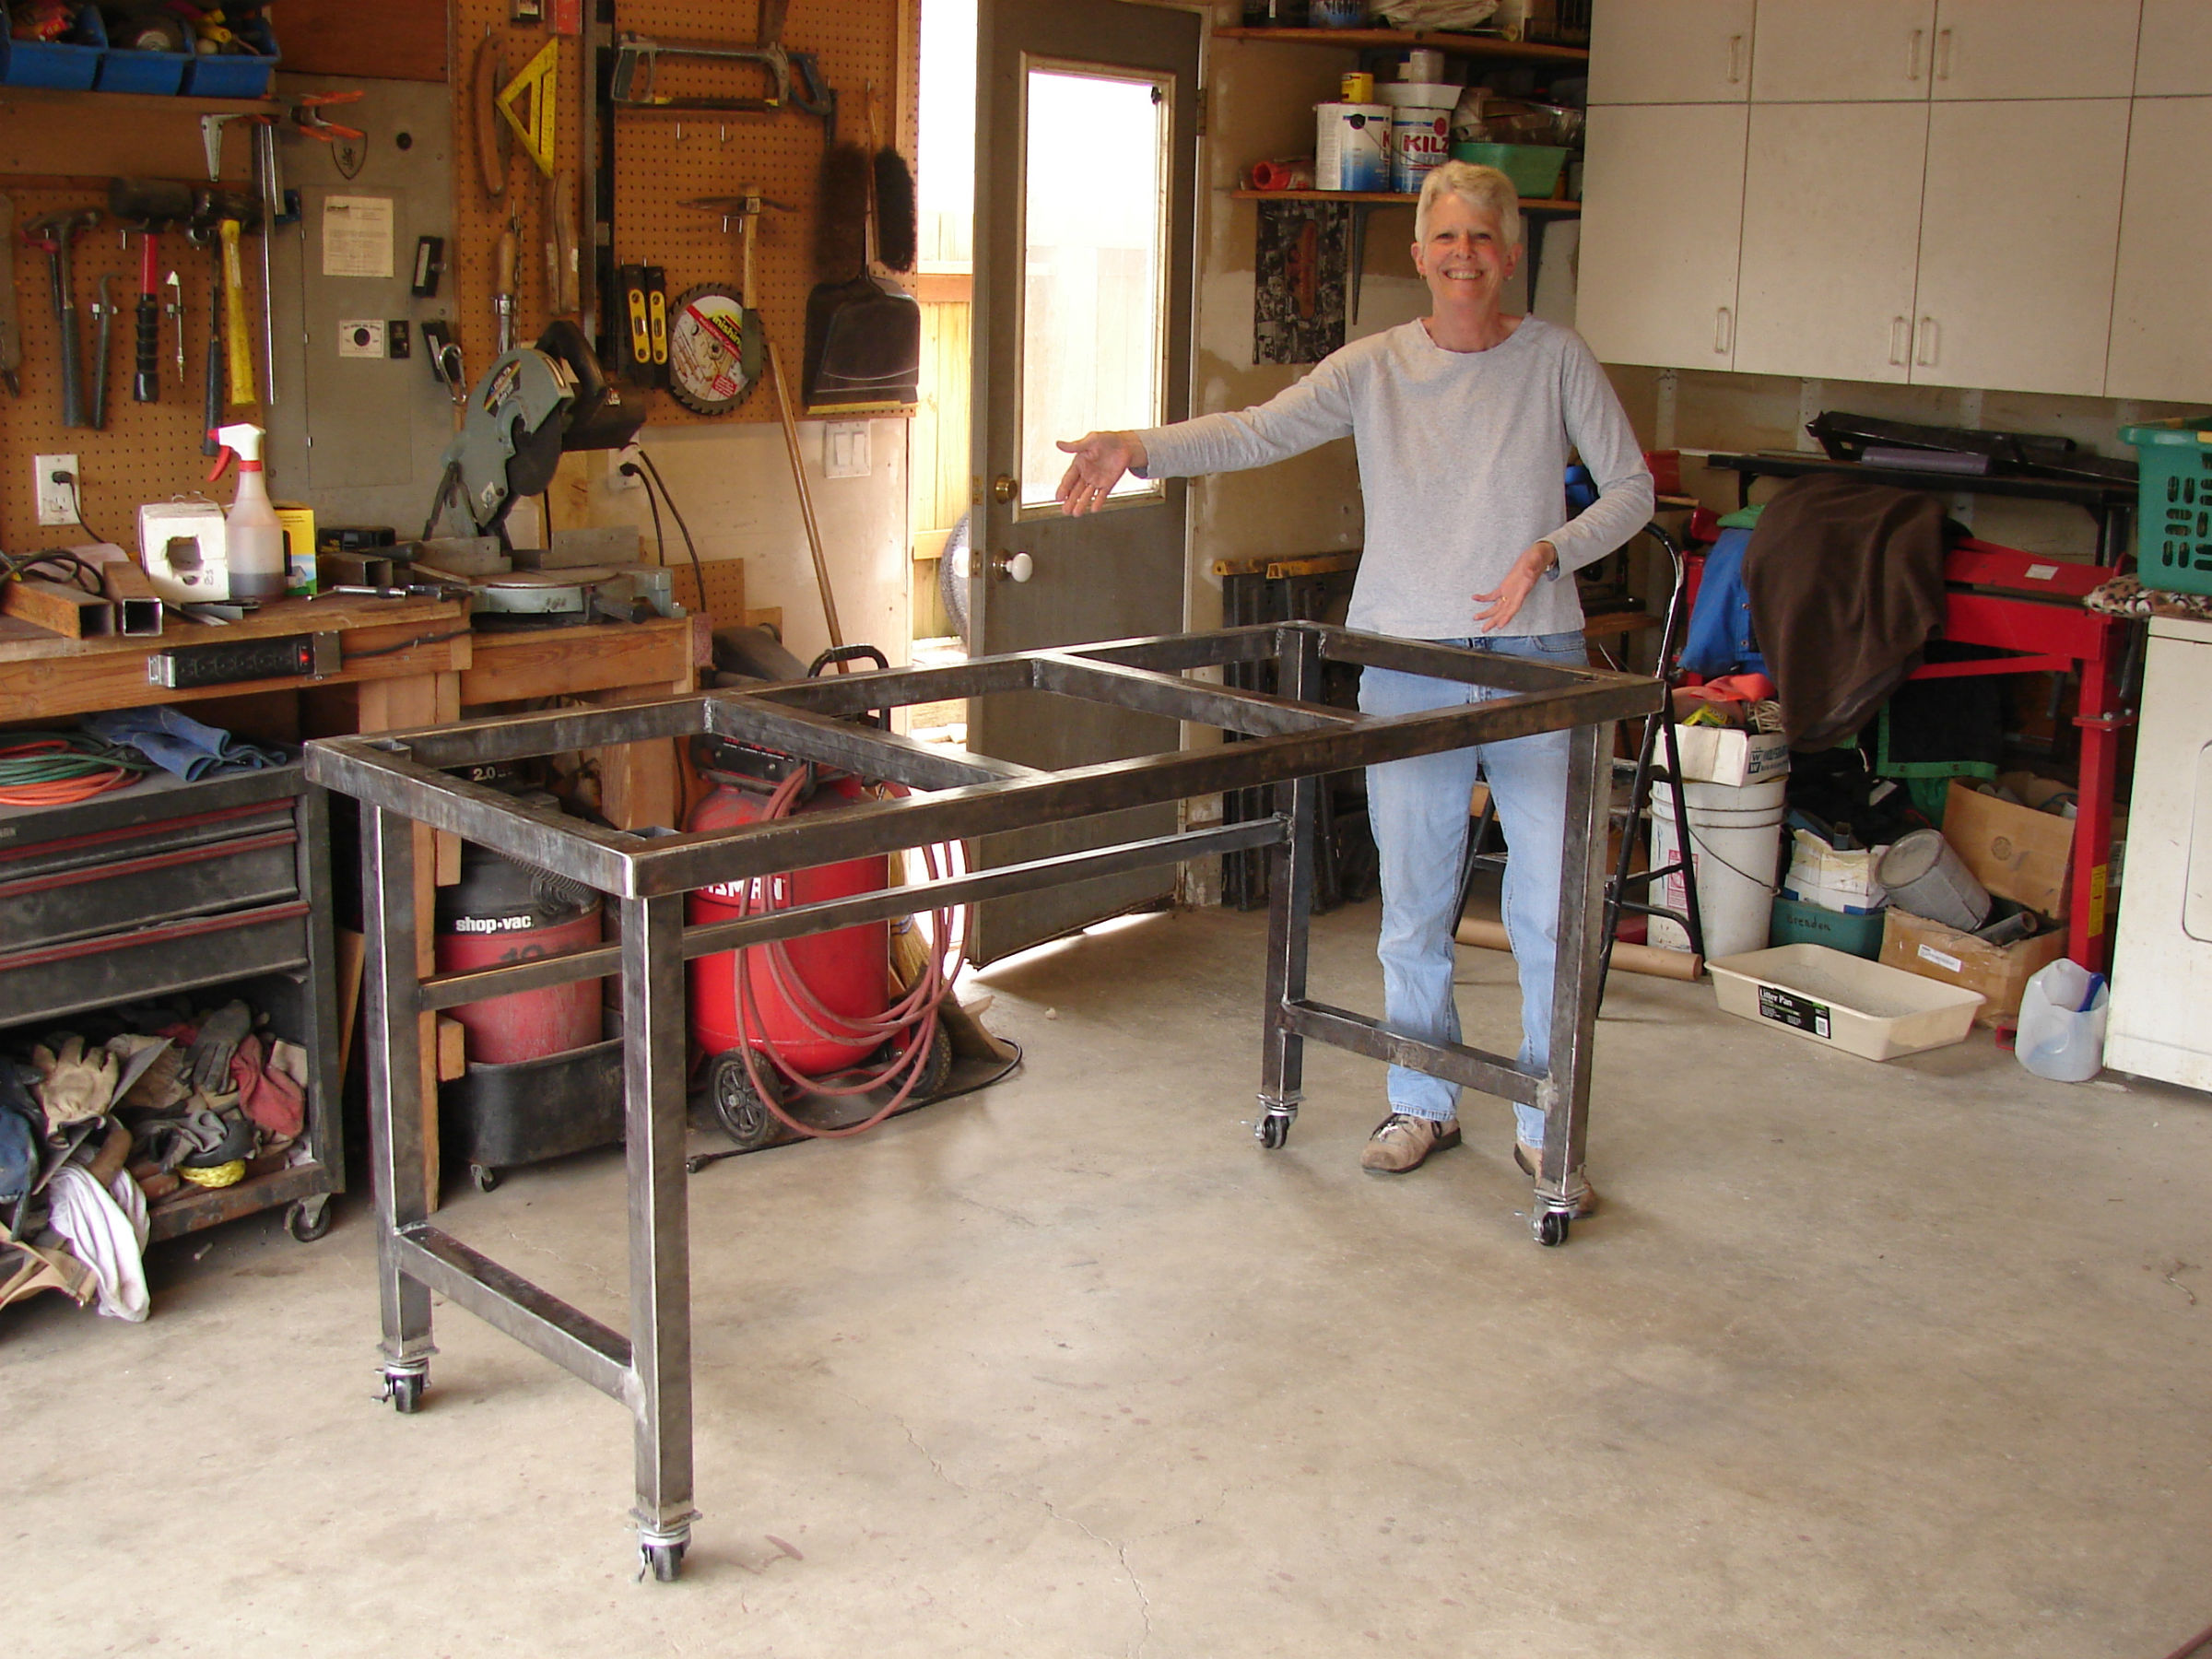 Click image for larger version  Name:workbench donna.jpg Views:209 Size:670.9 KB ID:56303